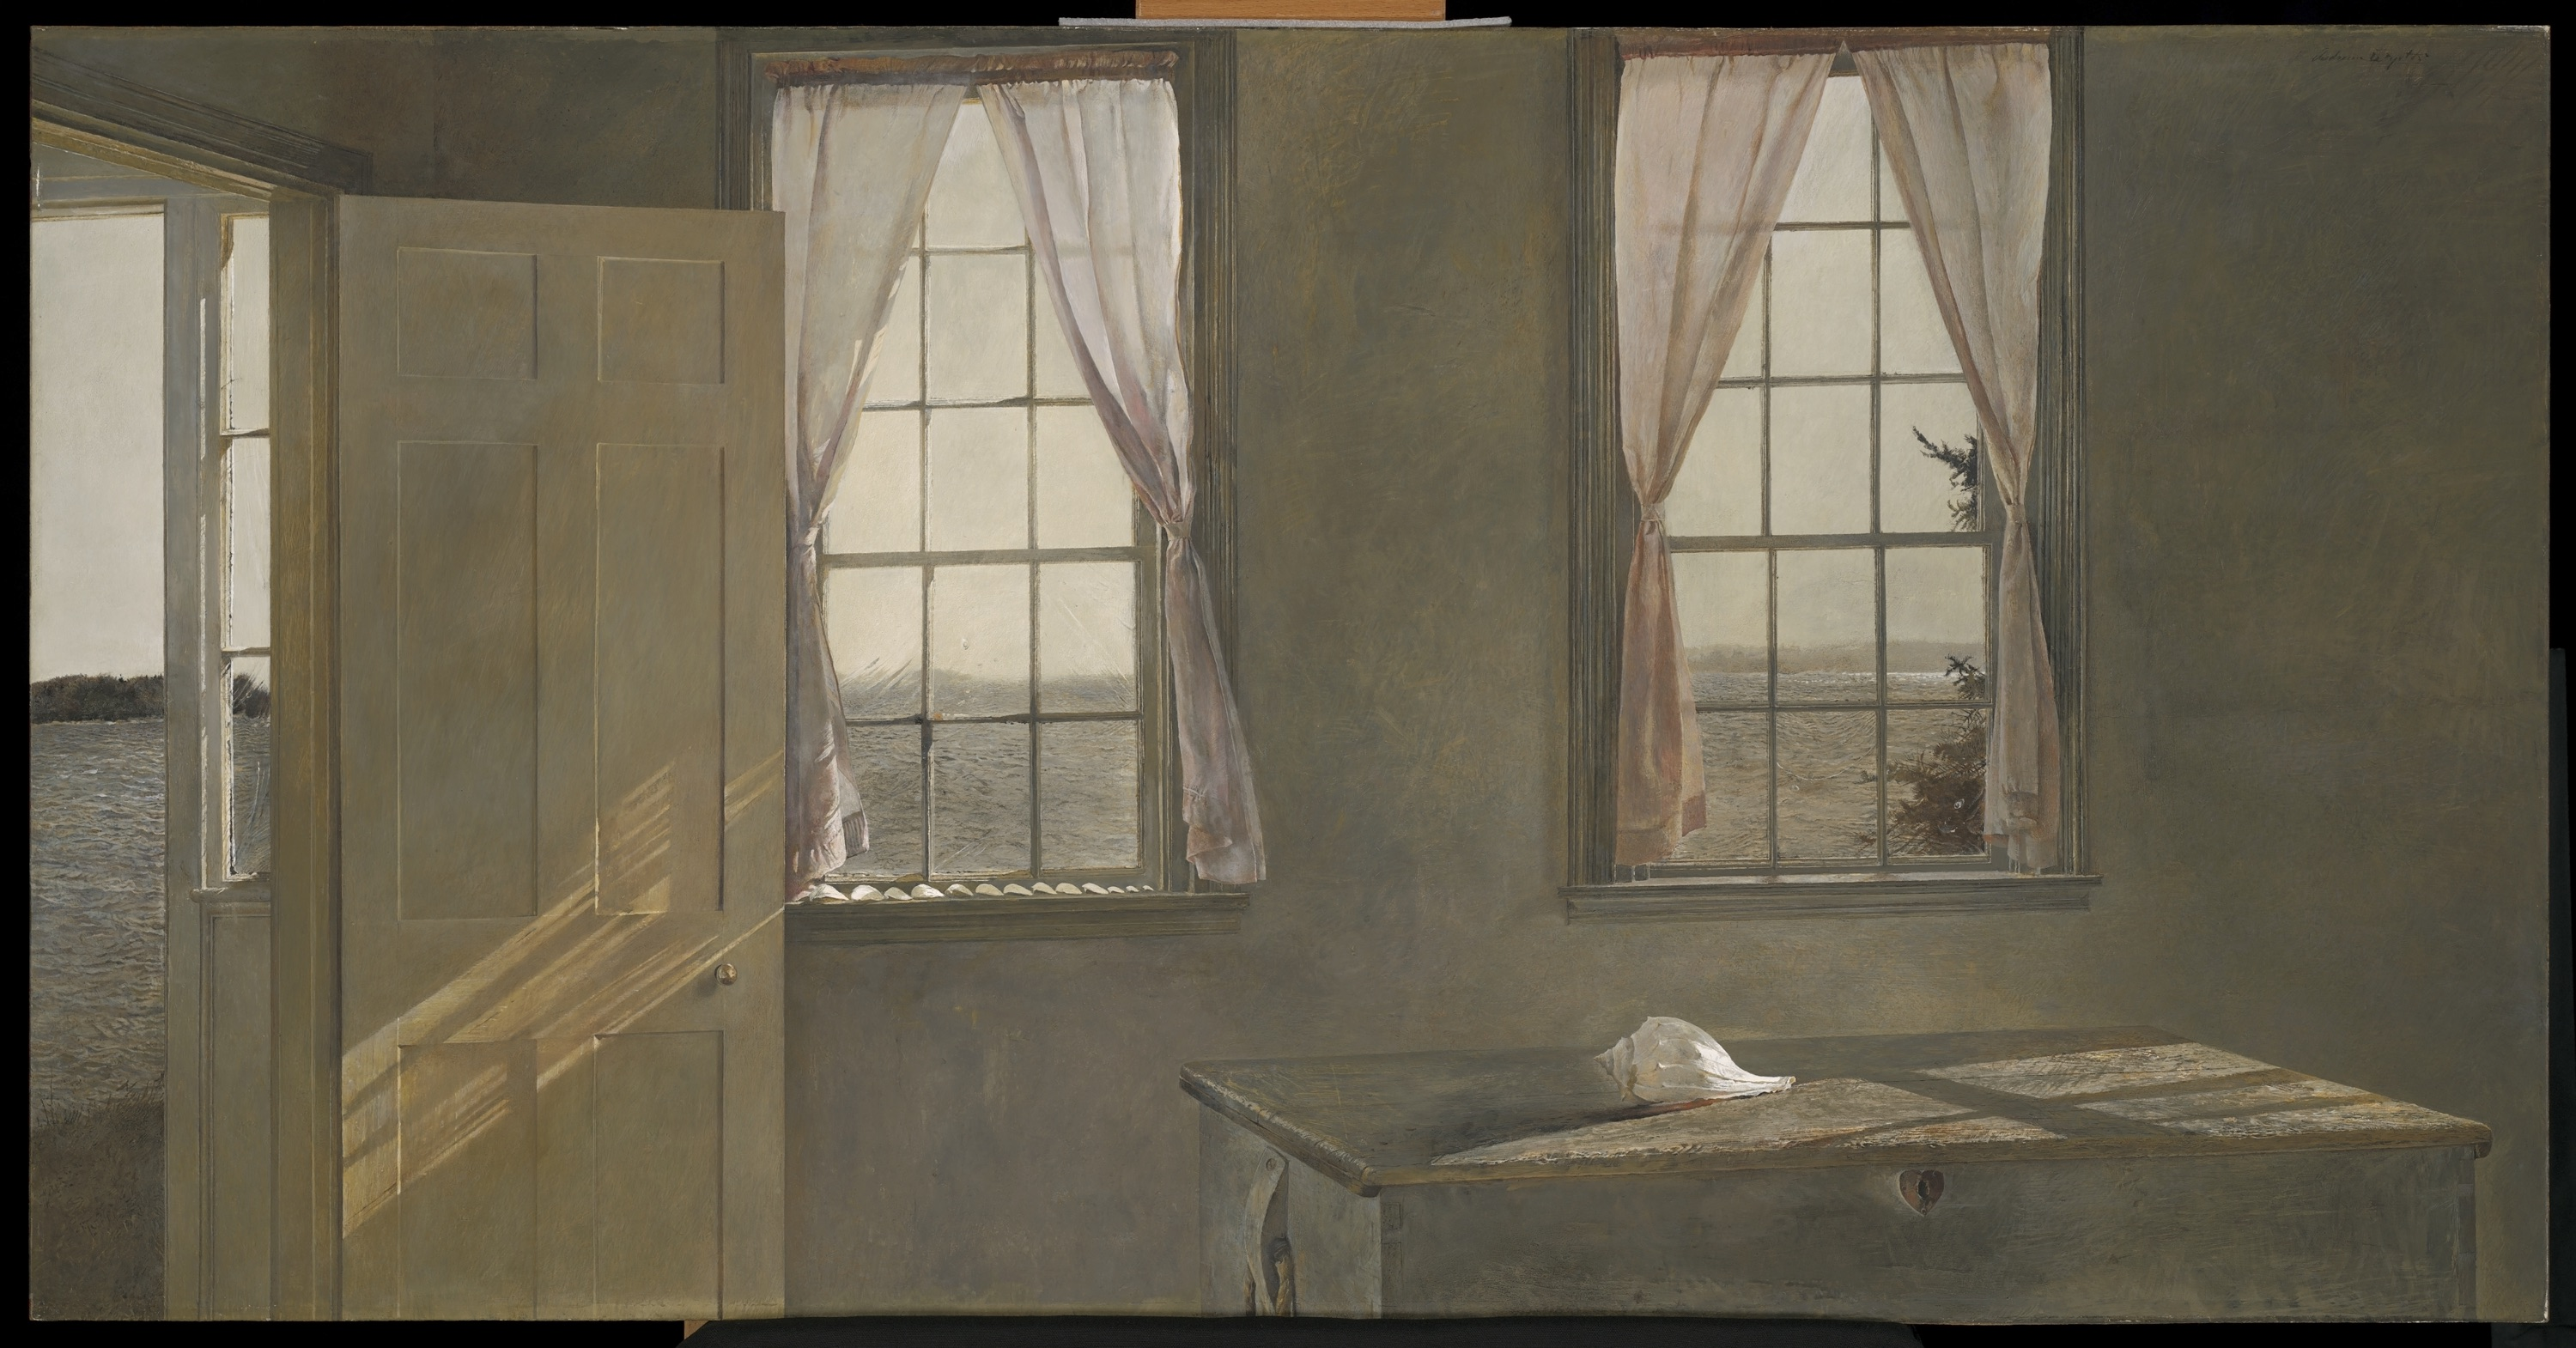 Her Room, Andrew Wyeth at 100